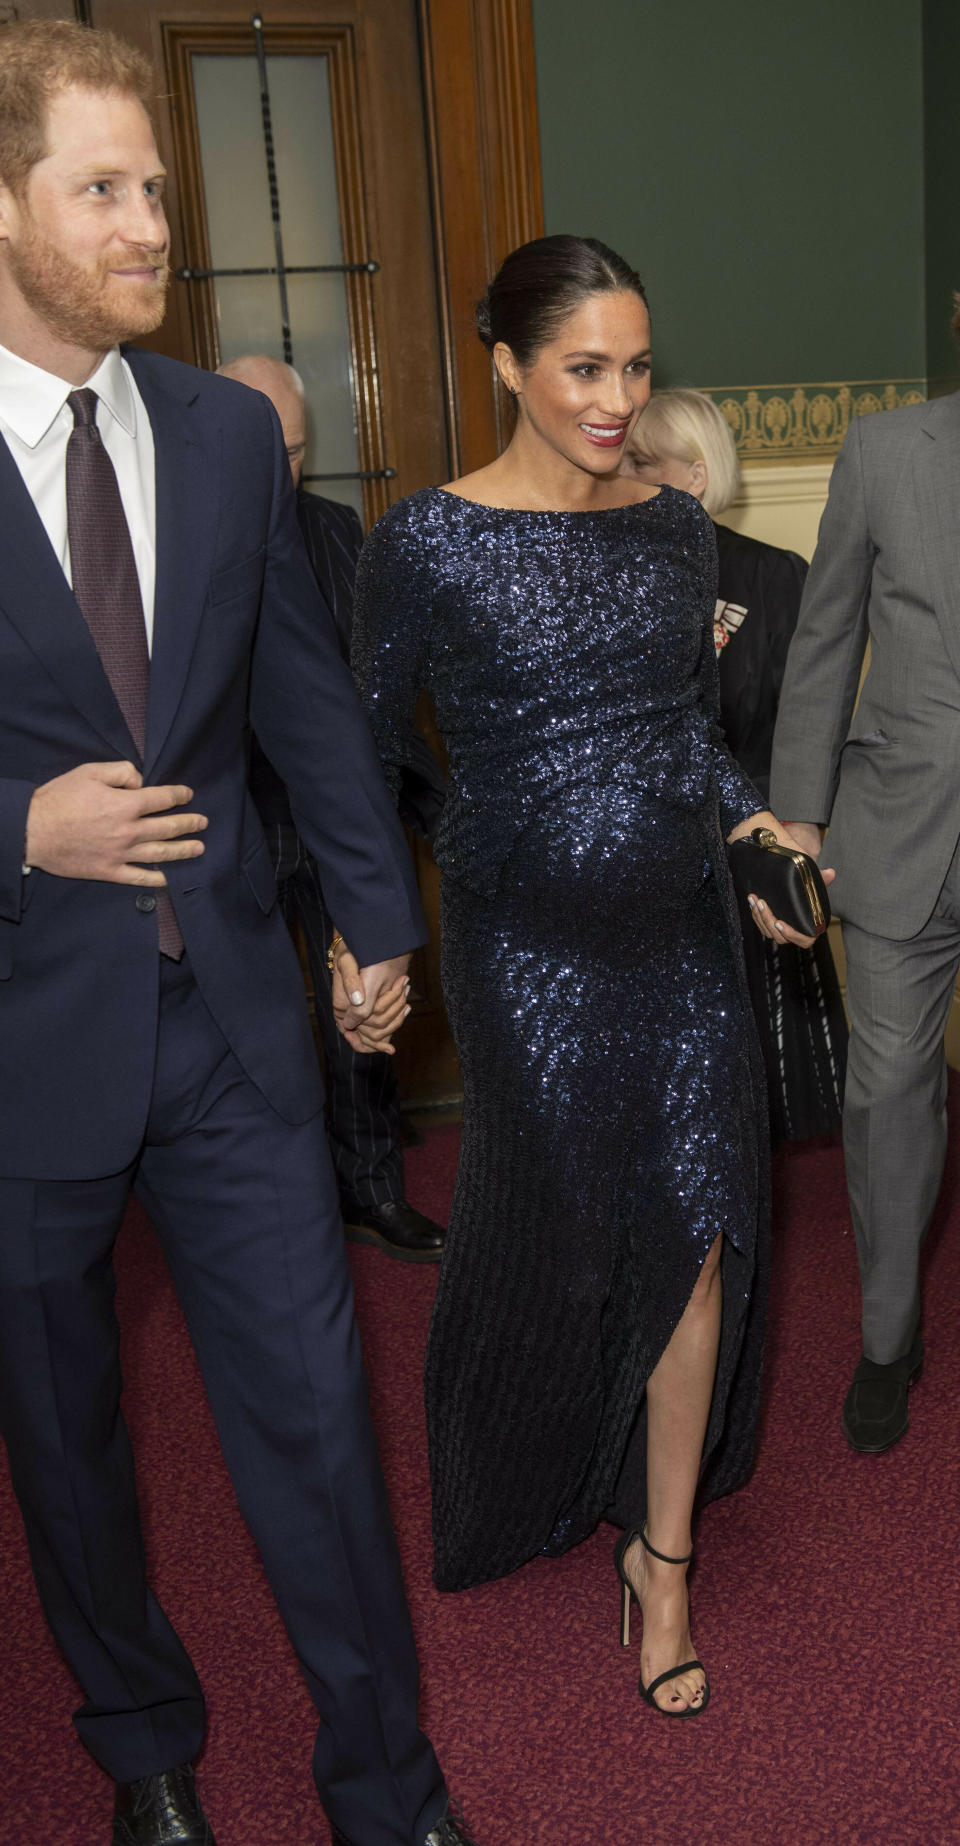 Photo by: KGC-375/STAR MAX/IPx 2019 1/16/19 Prince Harry, The Duke of Sussex and Meghan, The Duchess of Sussex at the premiere of Cirque du Soleil's Totem in support of Sentebale at the Royal Albert Hall on Wednesday 16th January. The evening will raise awareness and funds for Sentebale's work with children and young people affected by HIV in southern Africa. Prince Harry and Meghan met representatives from Sentebale, Cirque du Soleil and Totem, including members of the cast.